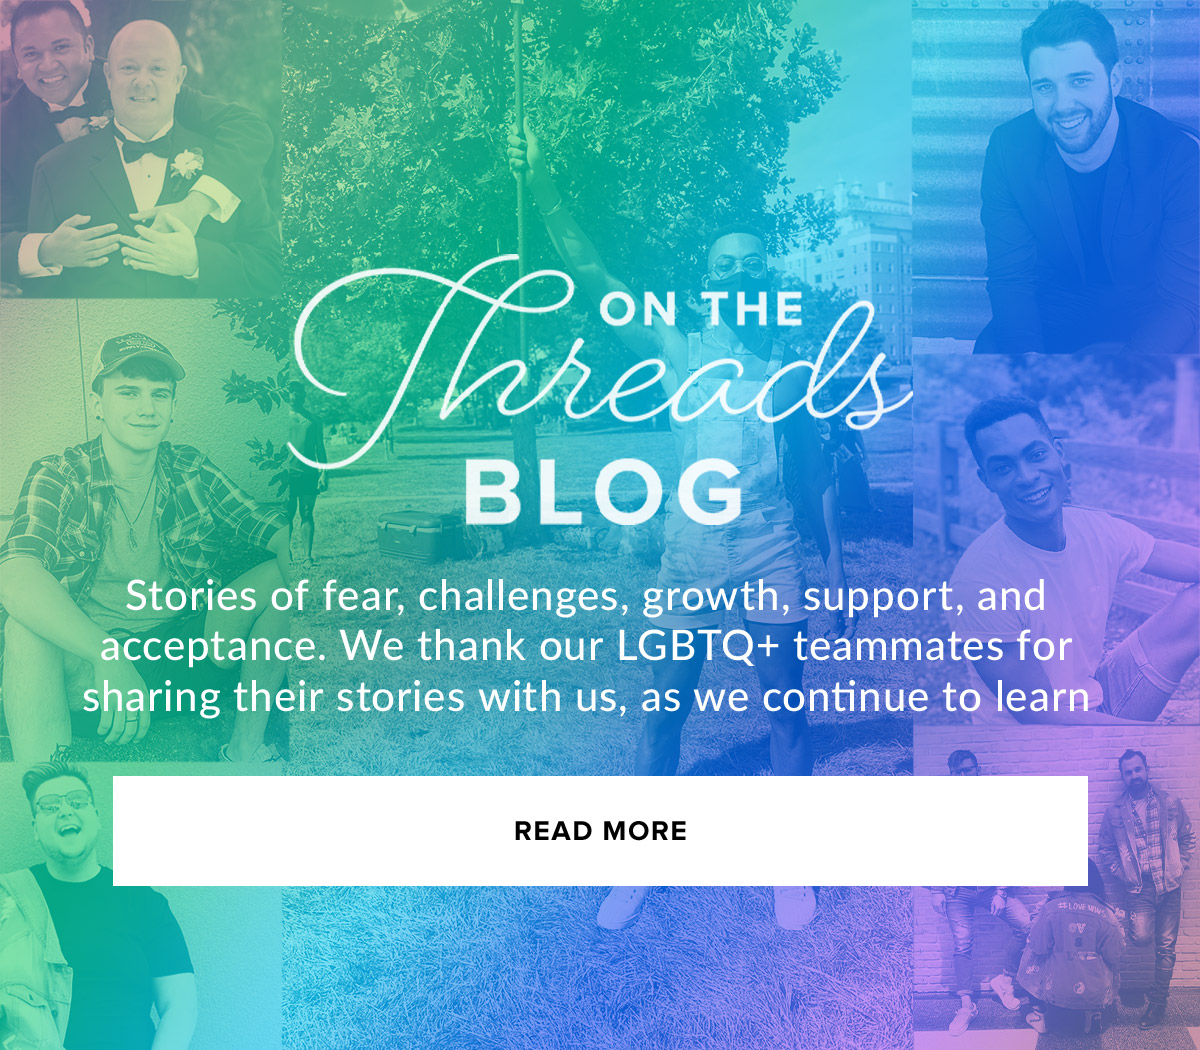 On The Blog - LGBTQ+ Stories - Read More